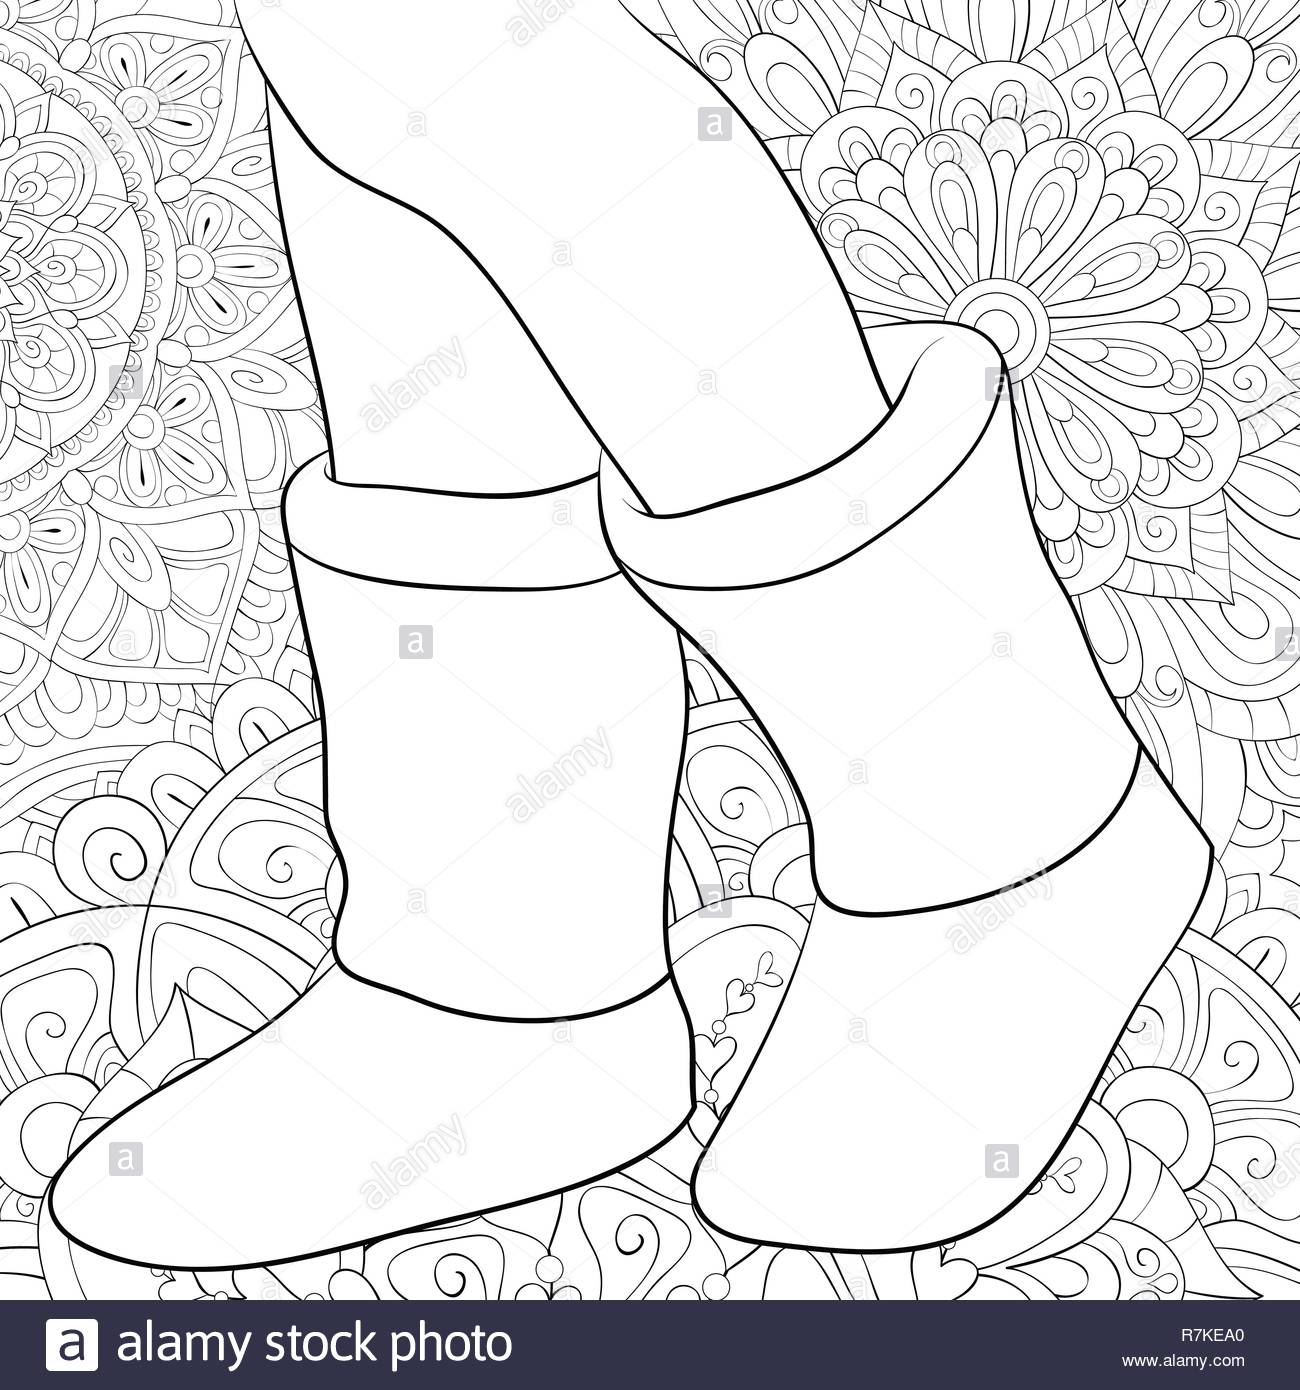 A Cute Pair Of Boots On The Floral Abstract Background Image For